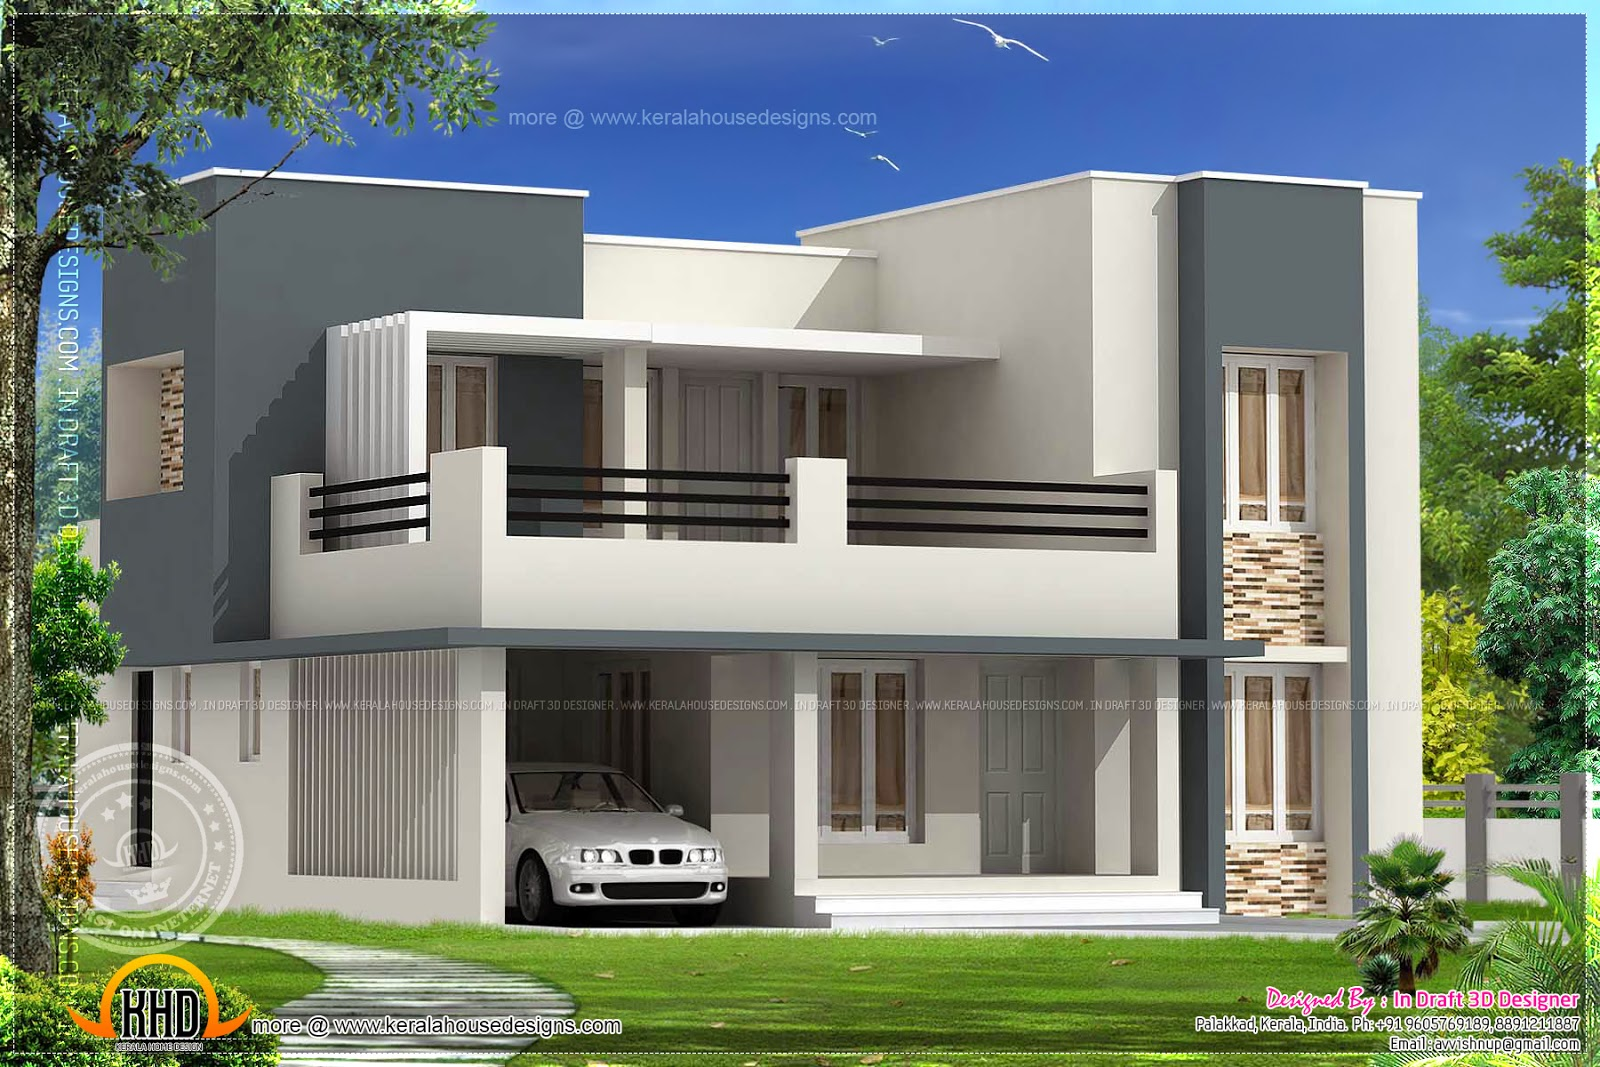 House design first floor - Flat Roof House